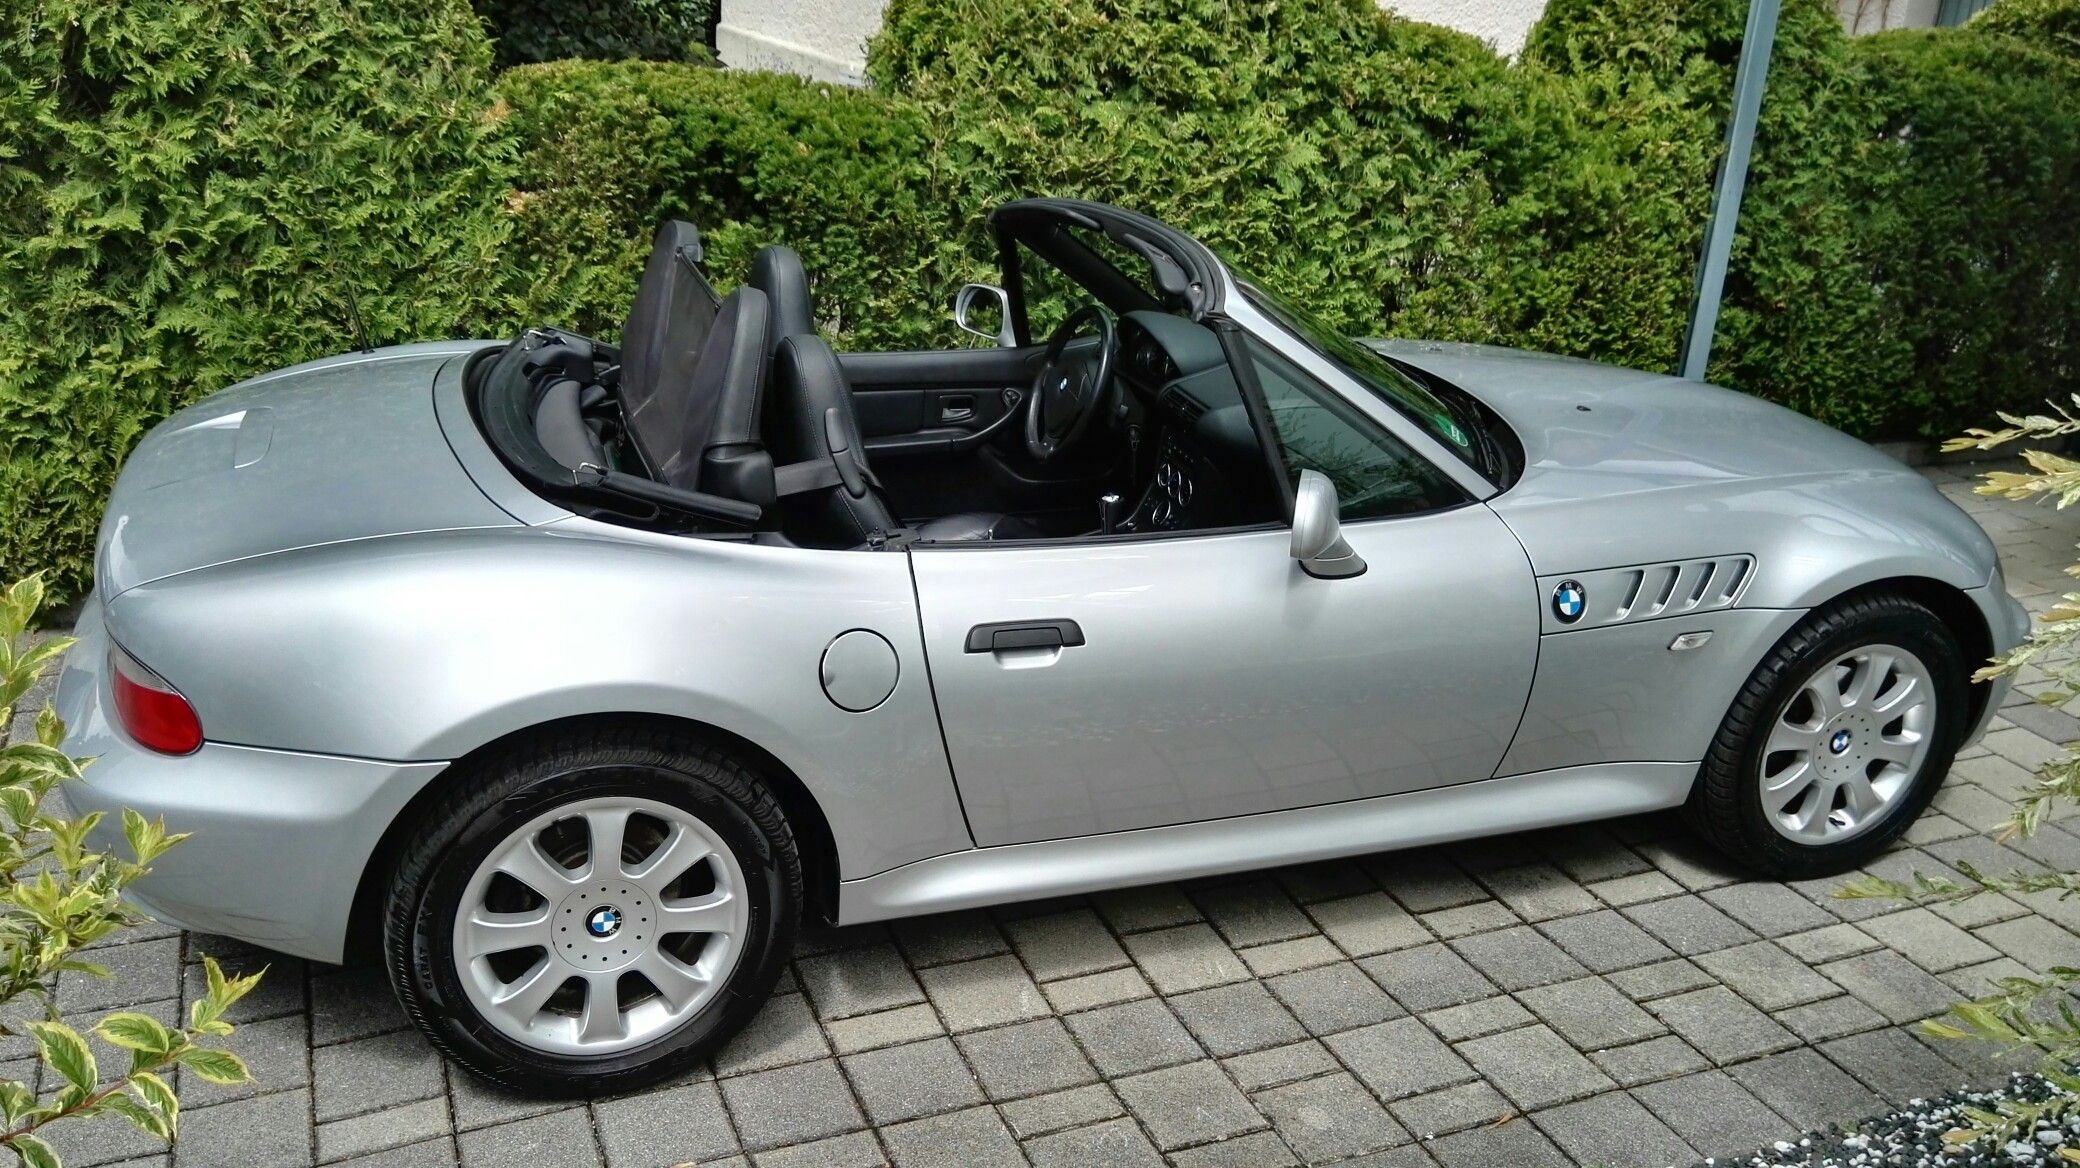 Gmail bmw theme - Explore Bmw Z3 Convertible And More